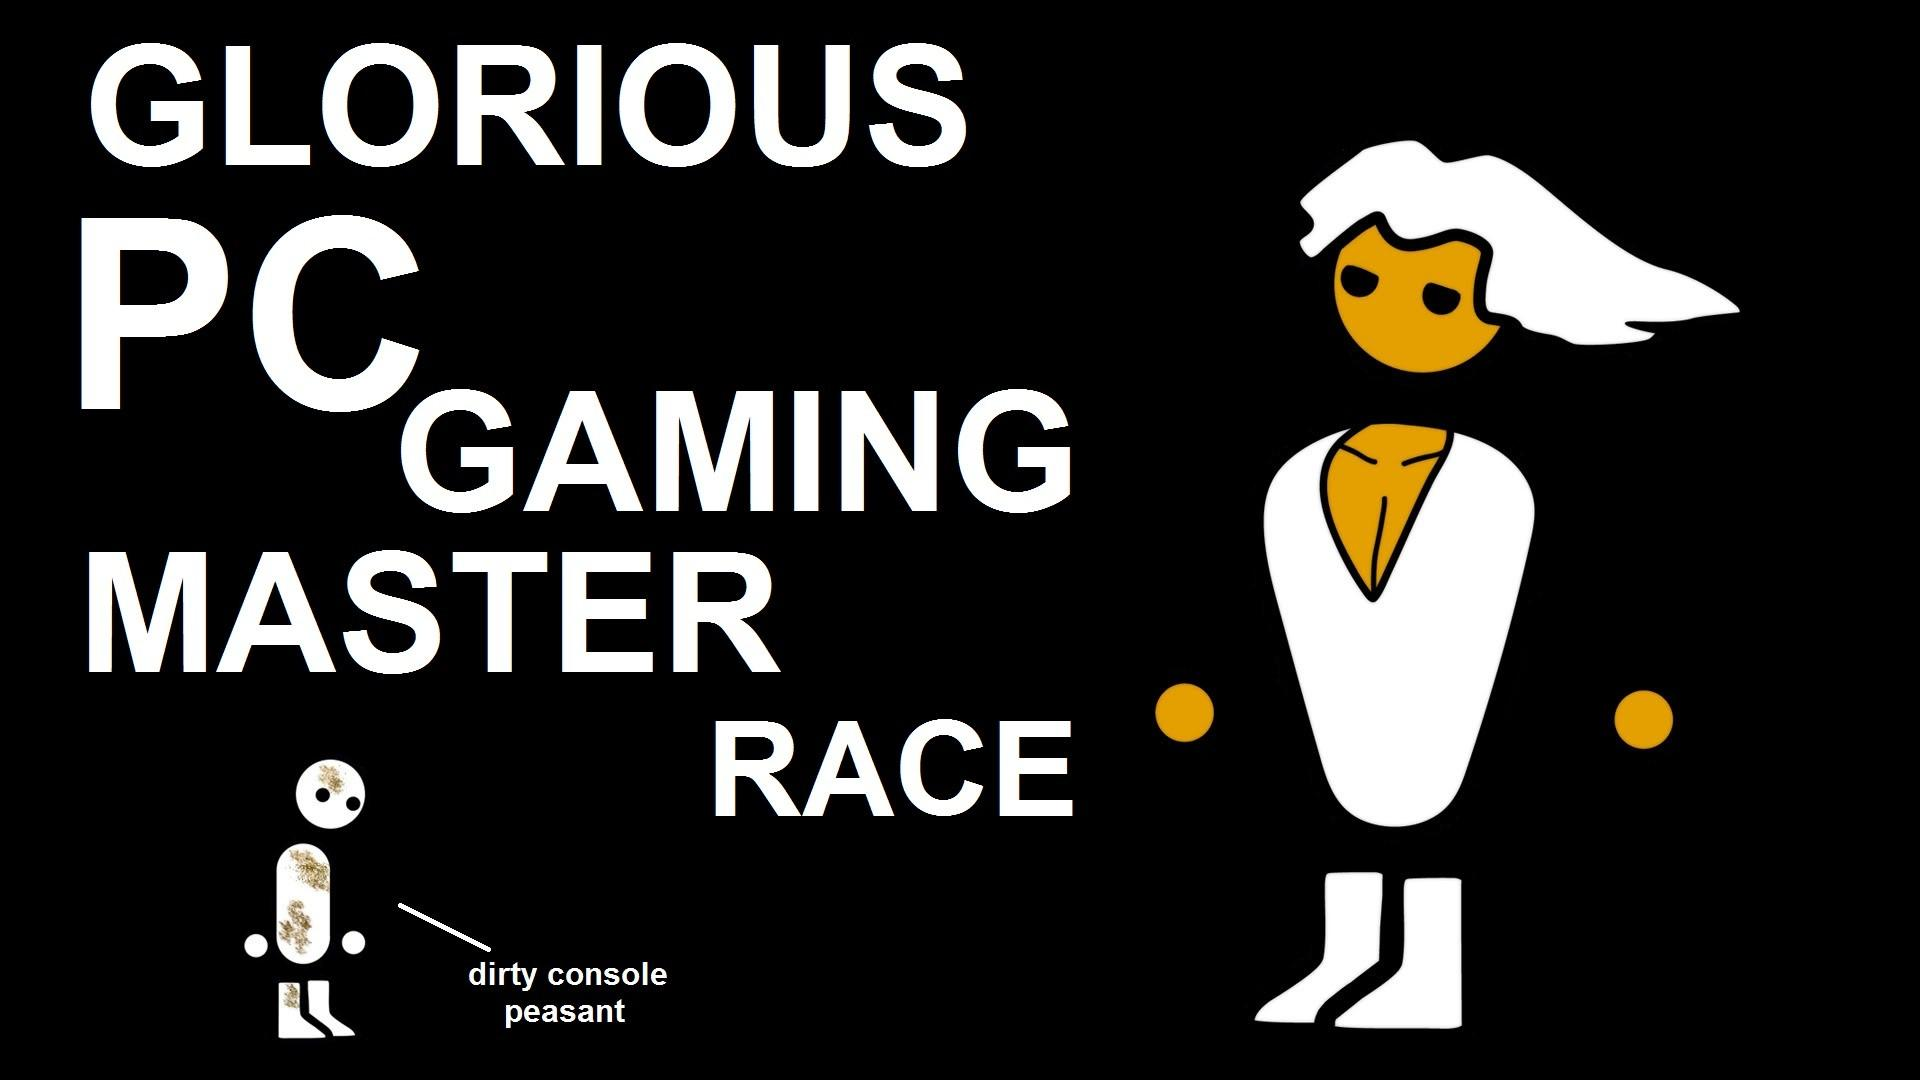 Image 508620 The Glorious Pc Gaming Master Race Know Your Meme